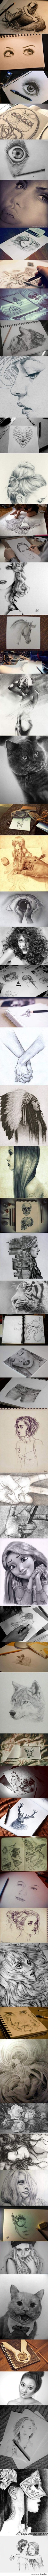 There are a couple of these I do not like, but for the most part, wow, incredible drawings...